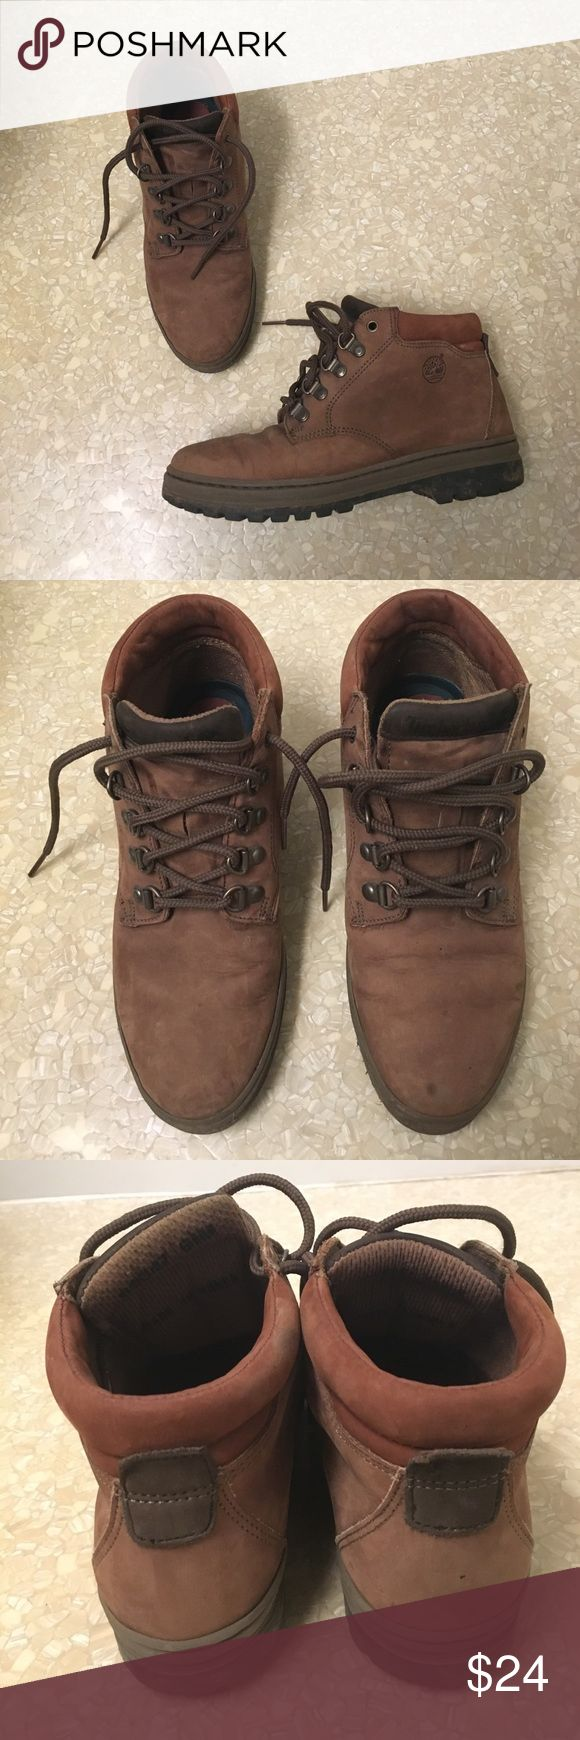 Vintage Timberland hiking boots Rugged hiking boots from Timberland. Not a ton of support, so would wear more for fashion or short hikes. Perfect for that outdoorsy look Timberland Shoes Ankle Boots & Booties